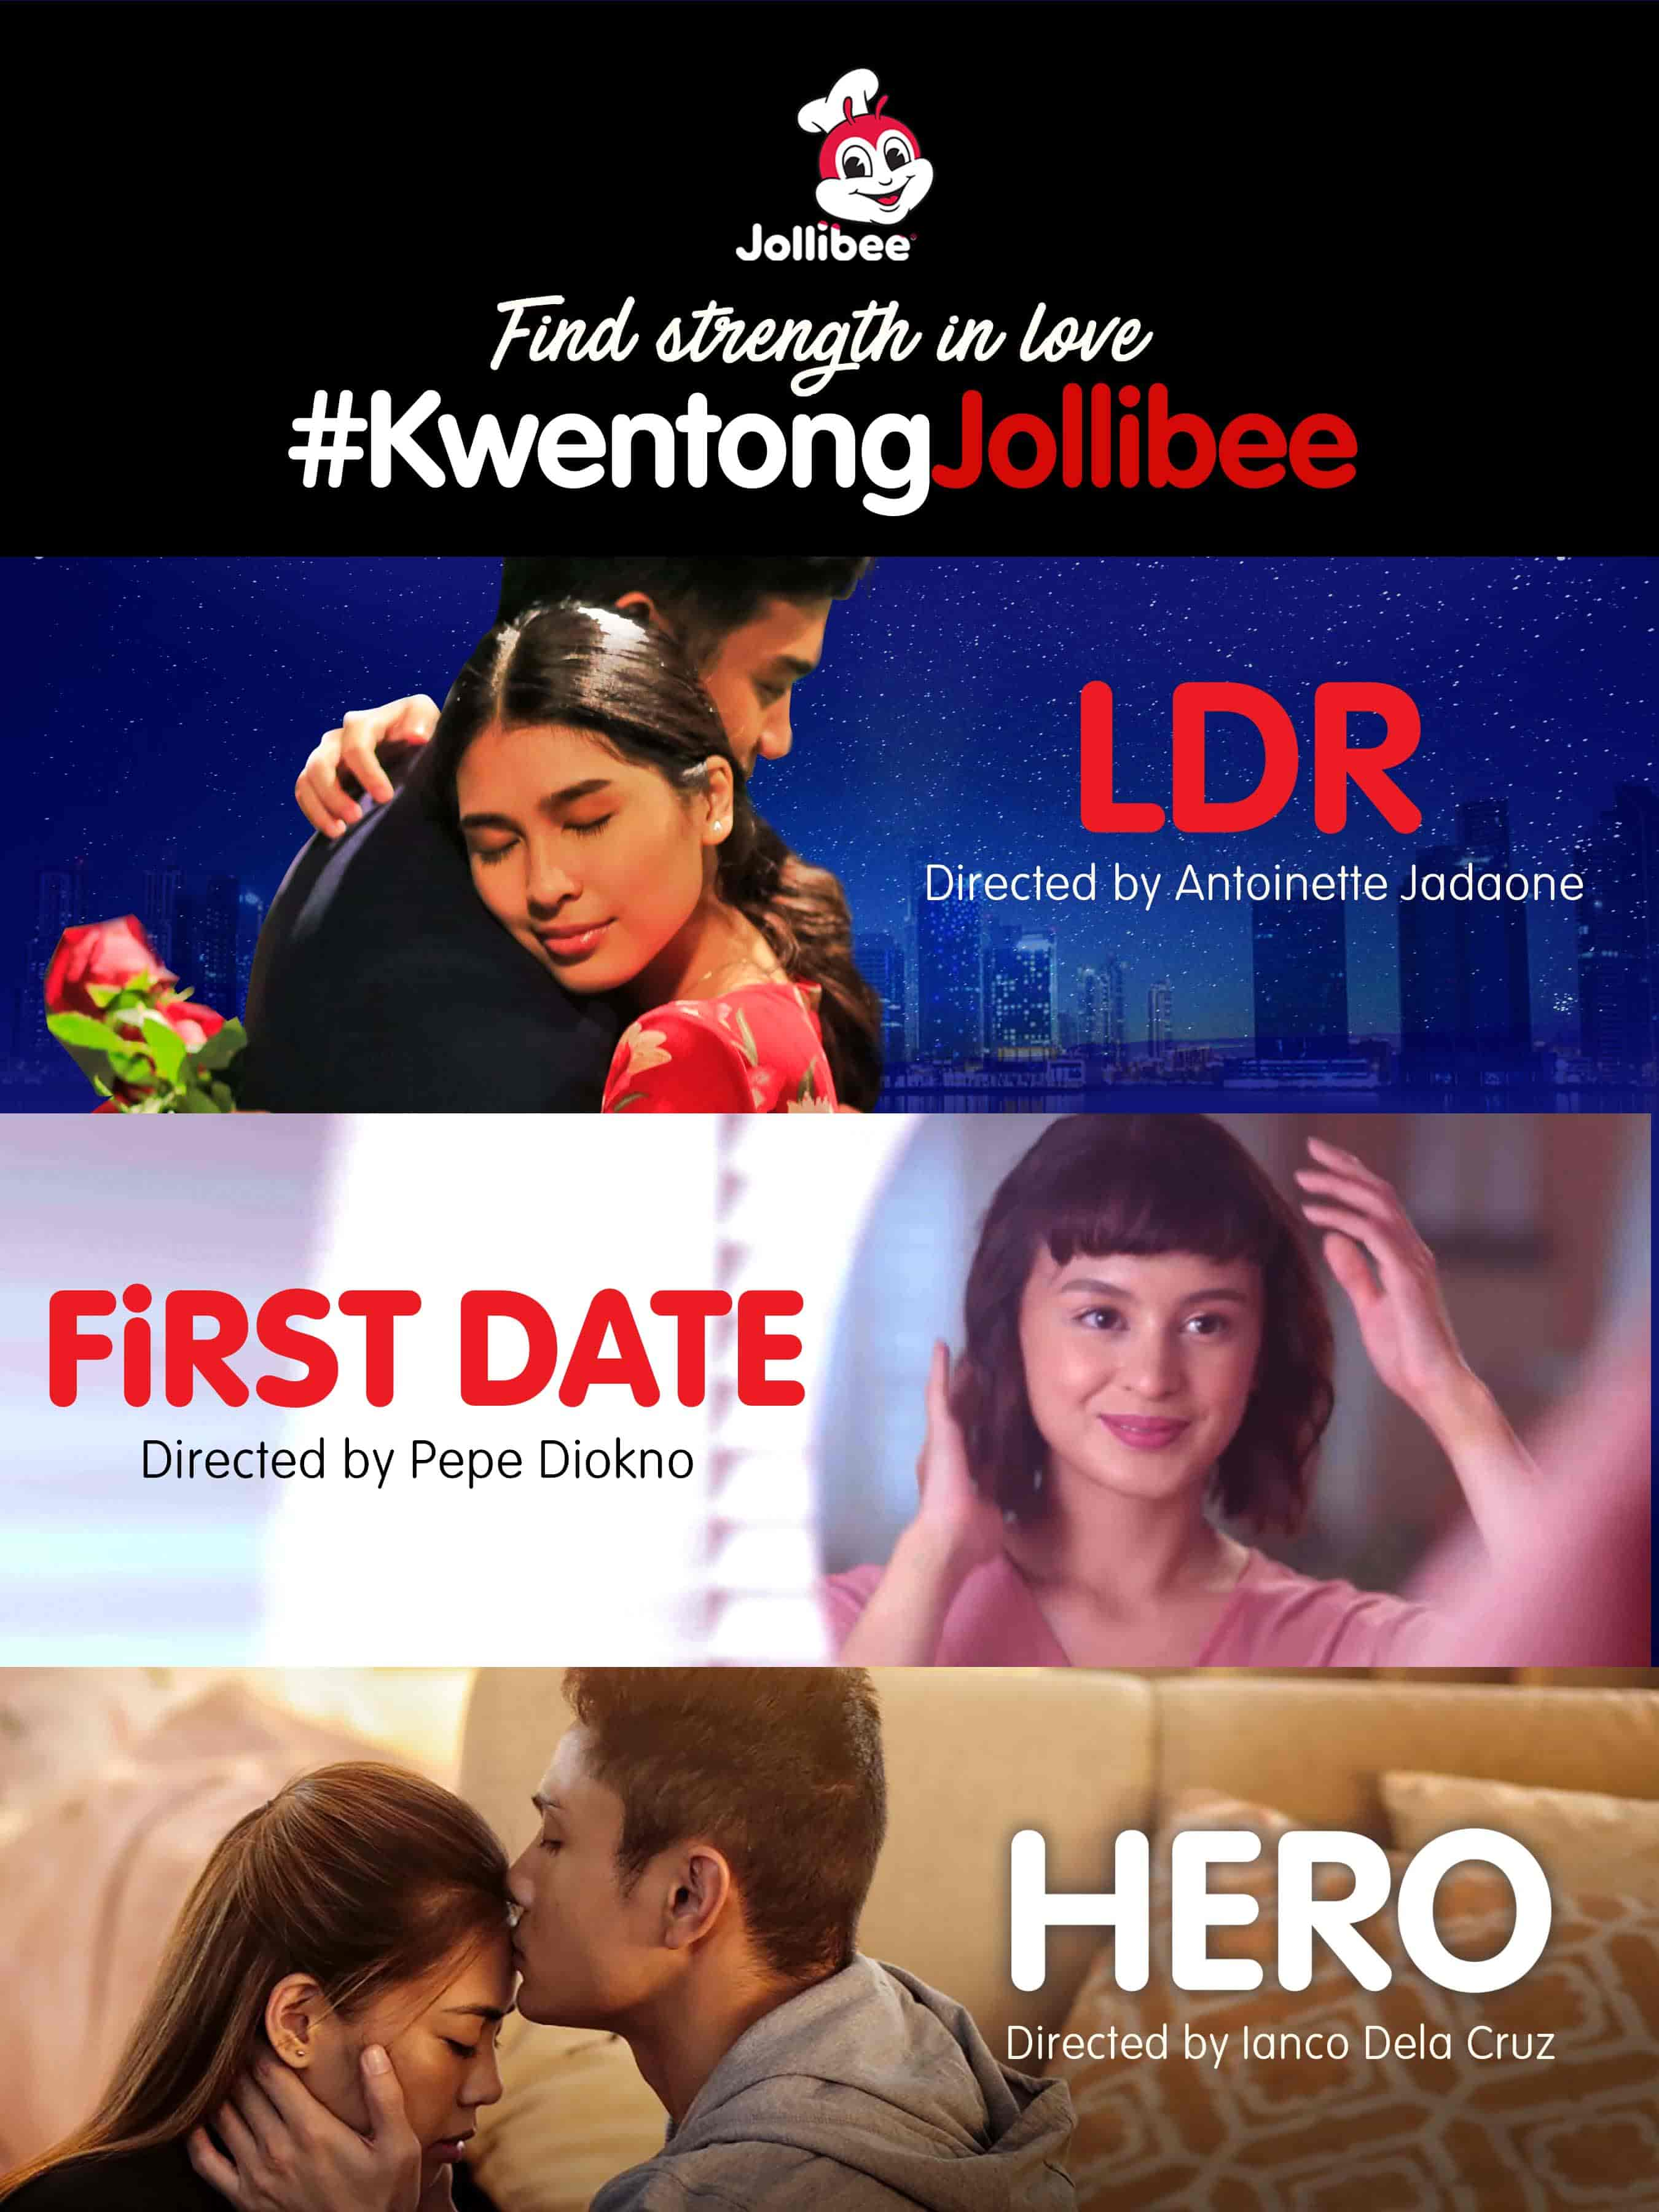 Jollibee is back with their Kwentong Jollibee series and this year it features three episodes: